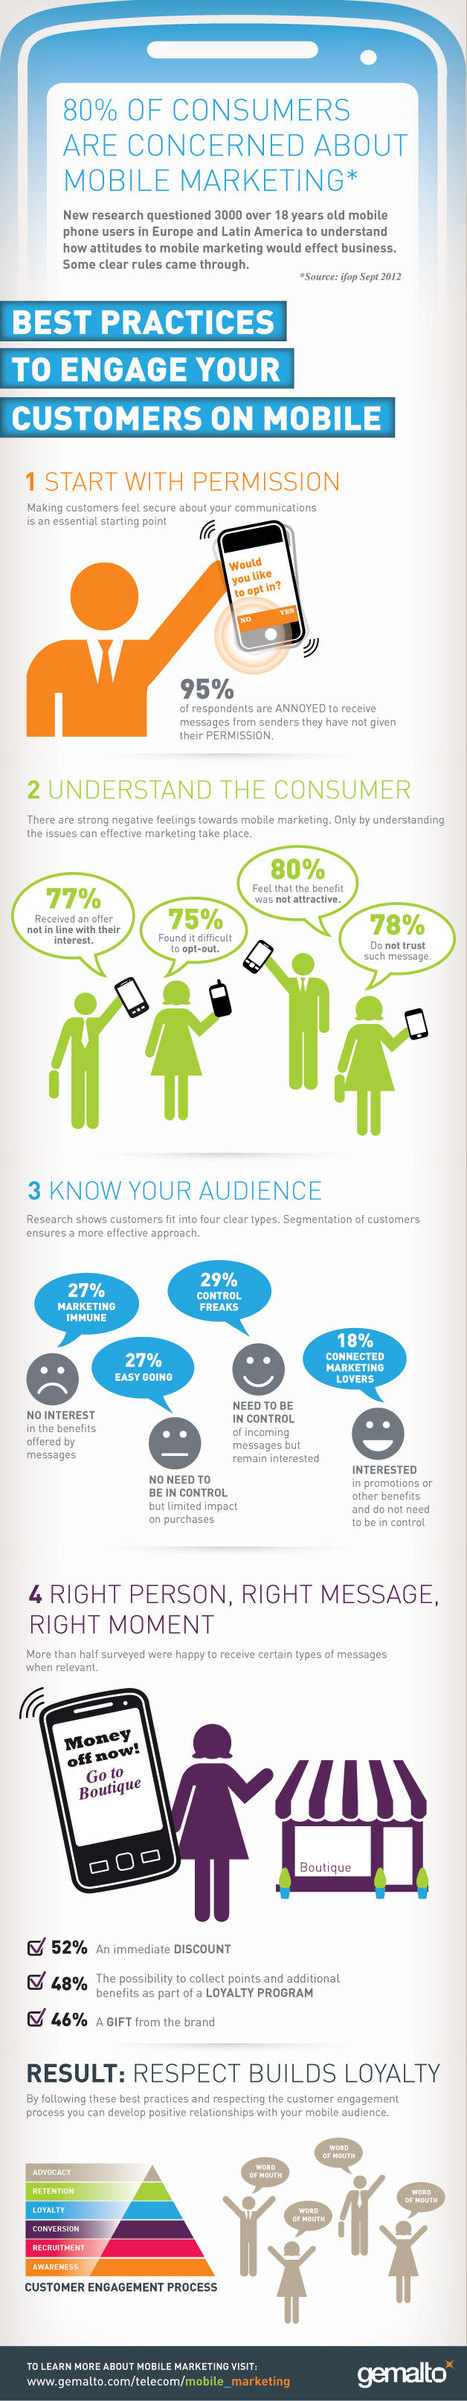 Mobile Marketing – Best Practices to Engage Your Customers on Mobile [Infographic] | digital marketing strategy | Scoop.it